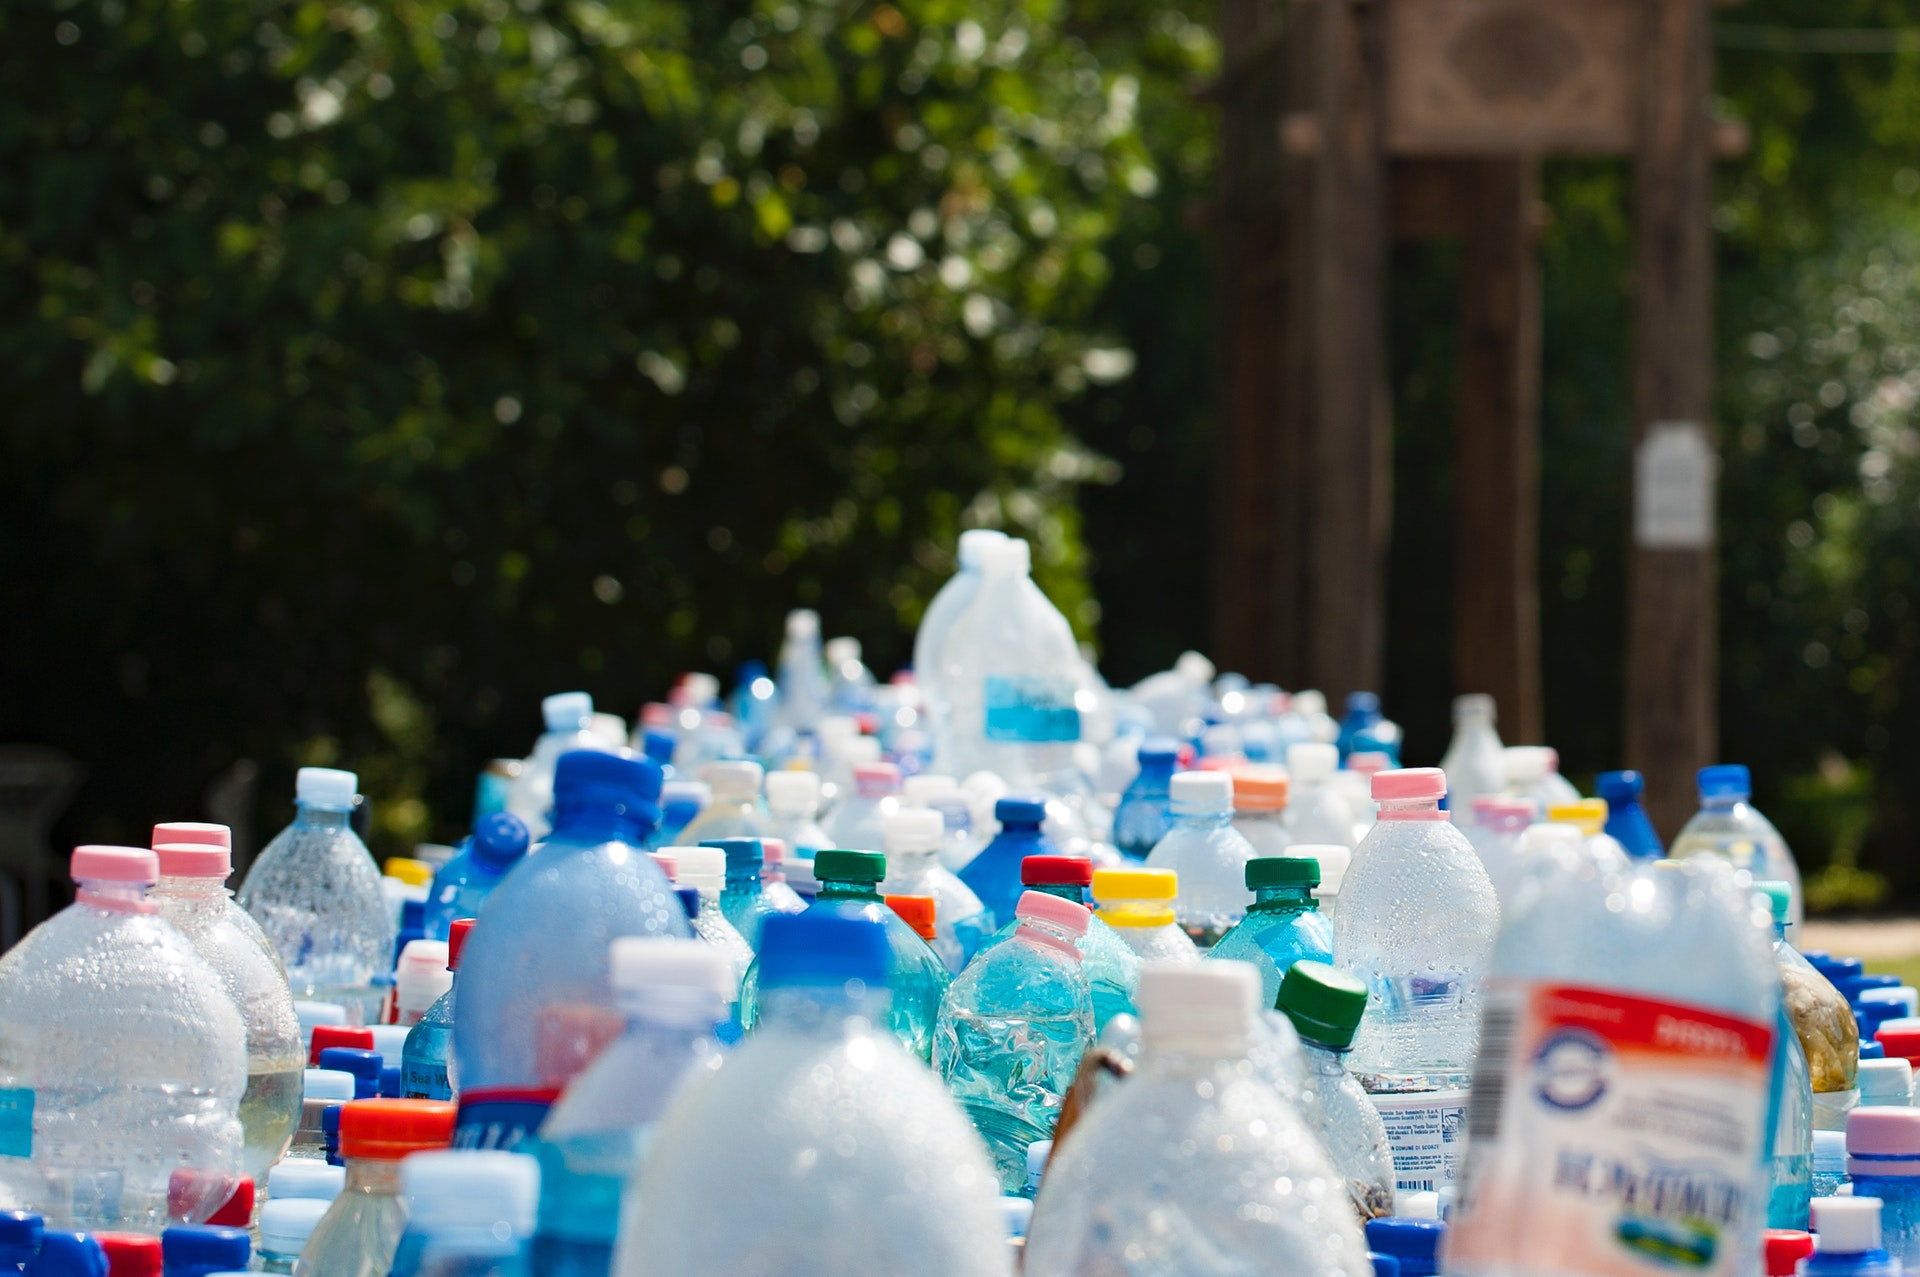 Plastic bottles banned in sustainability policy.